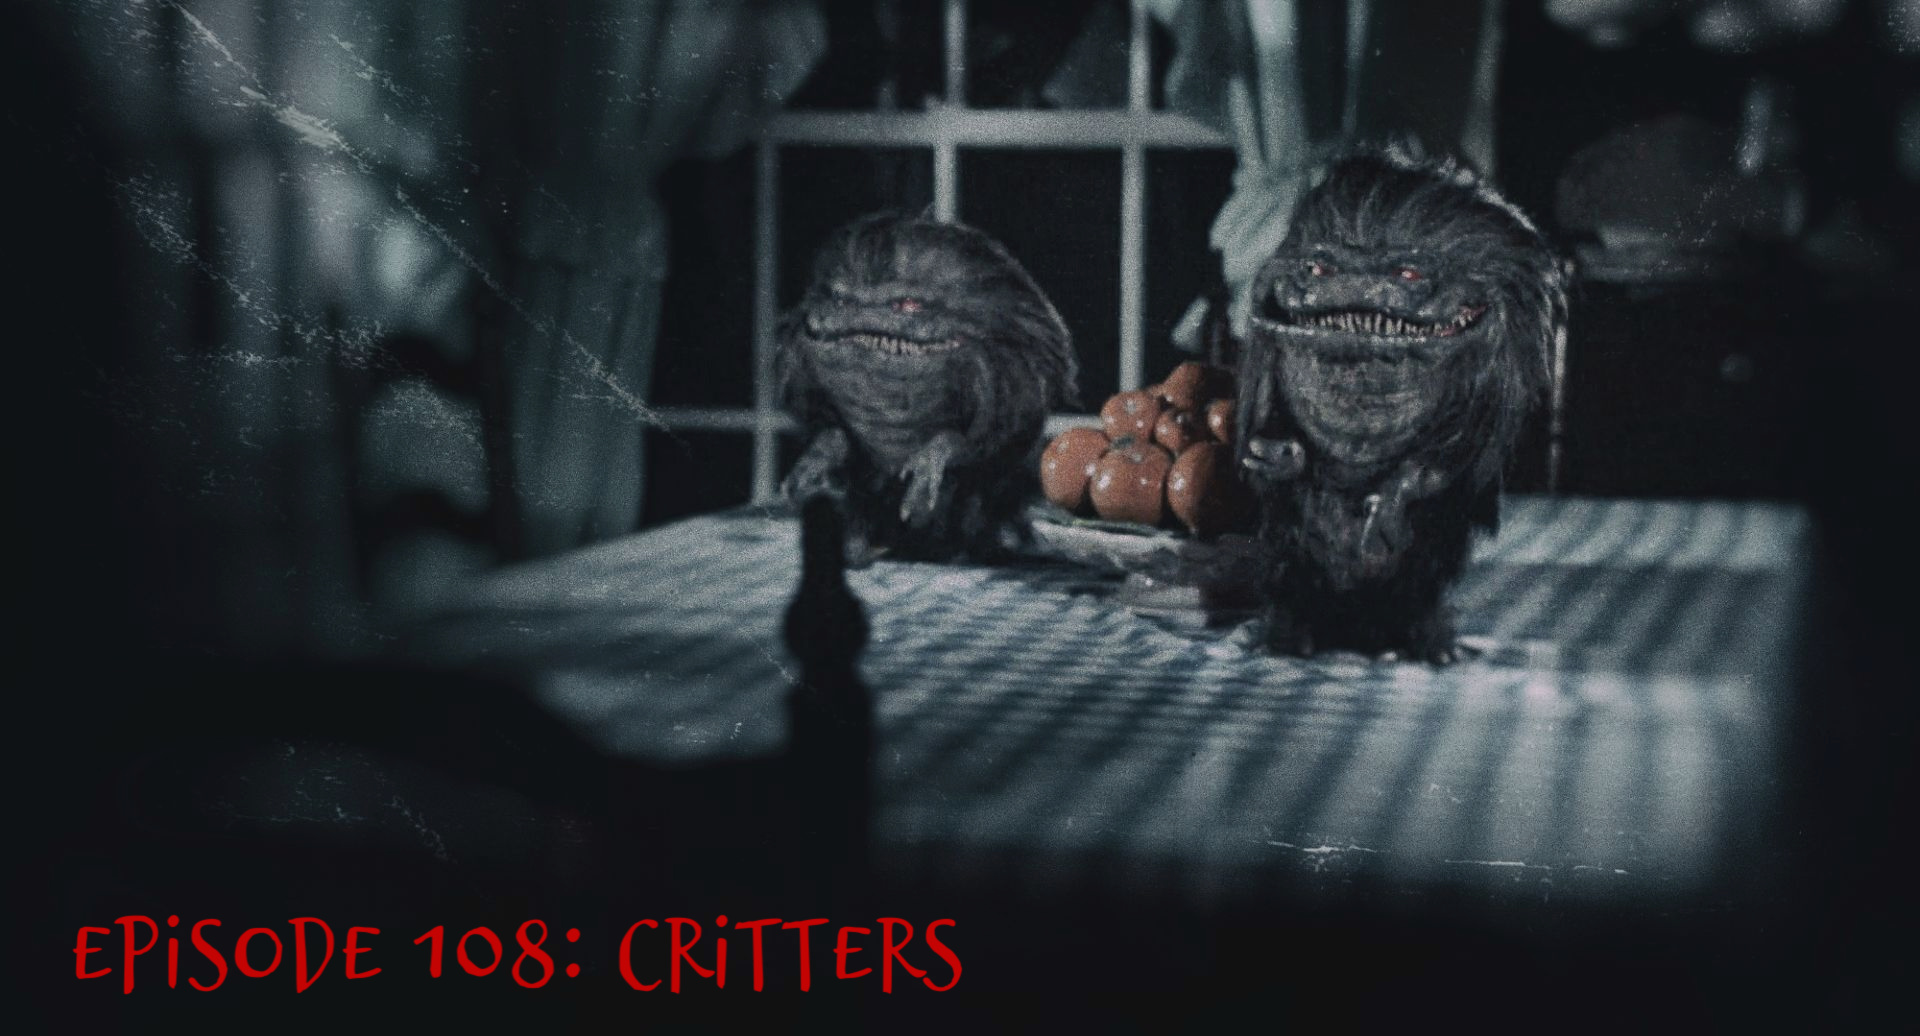 critters-movie-title.jpg